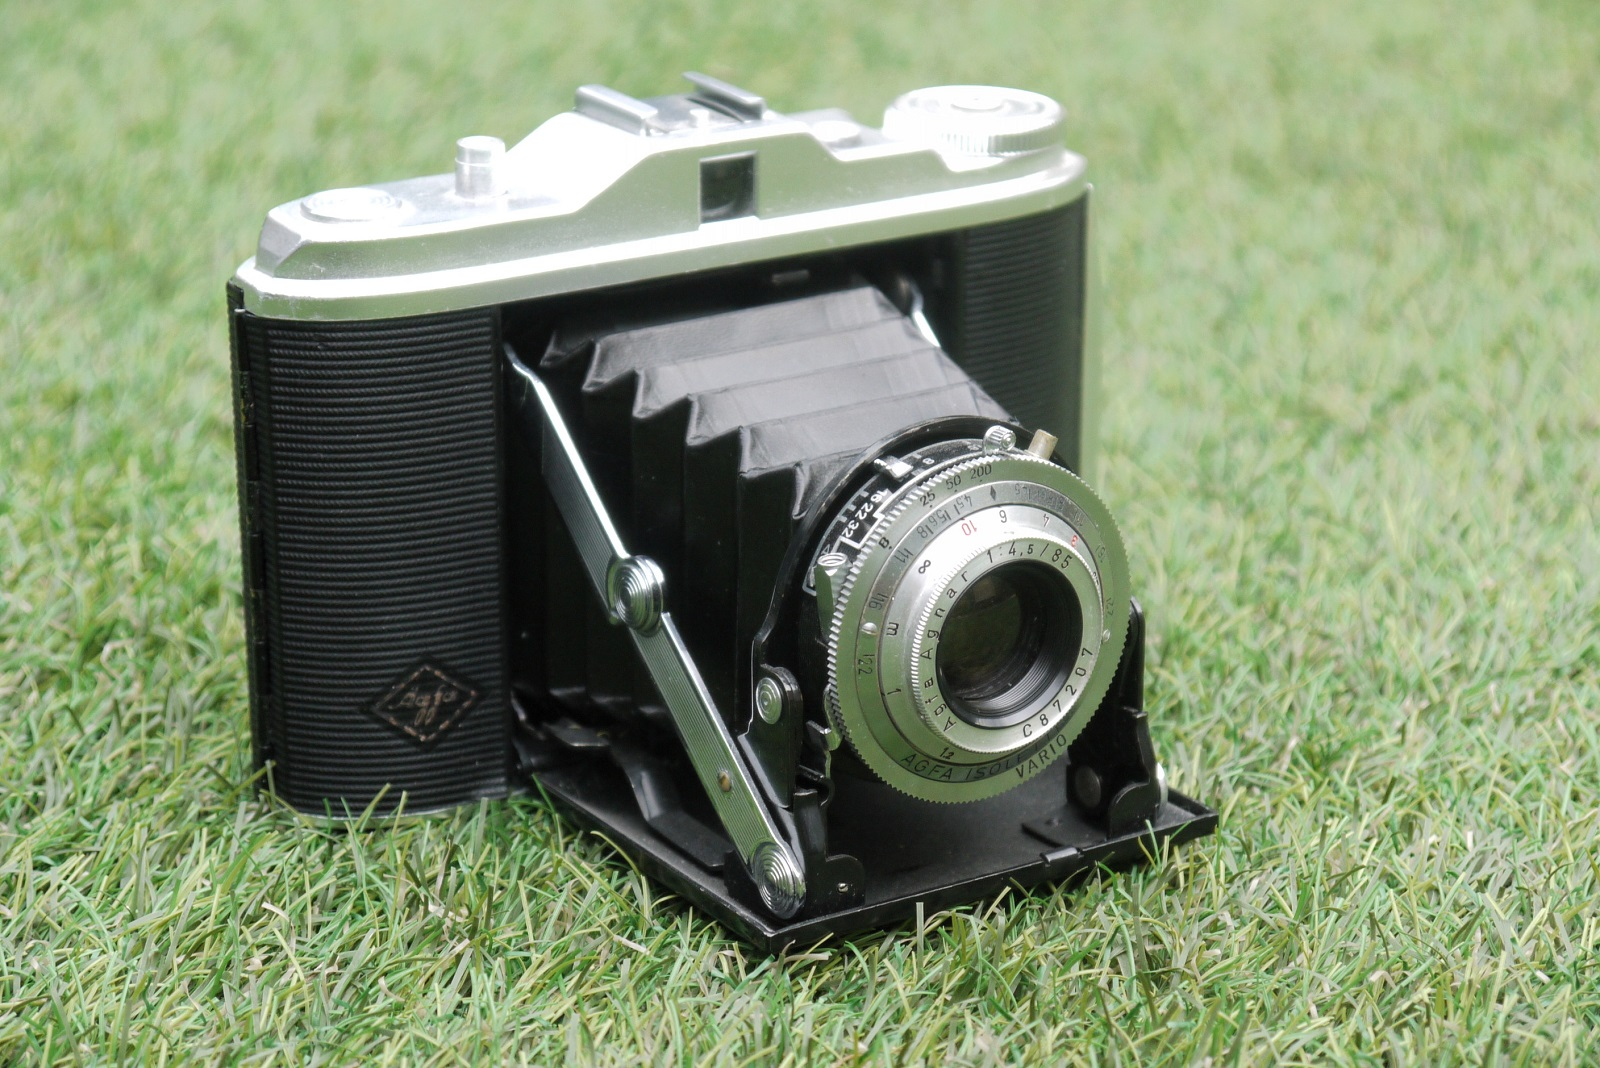 Agfa Isolette camera